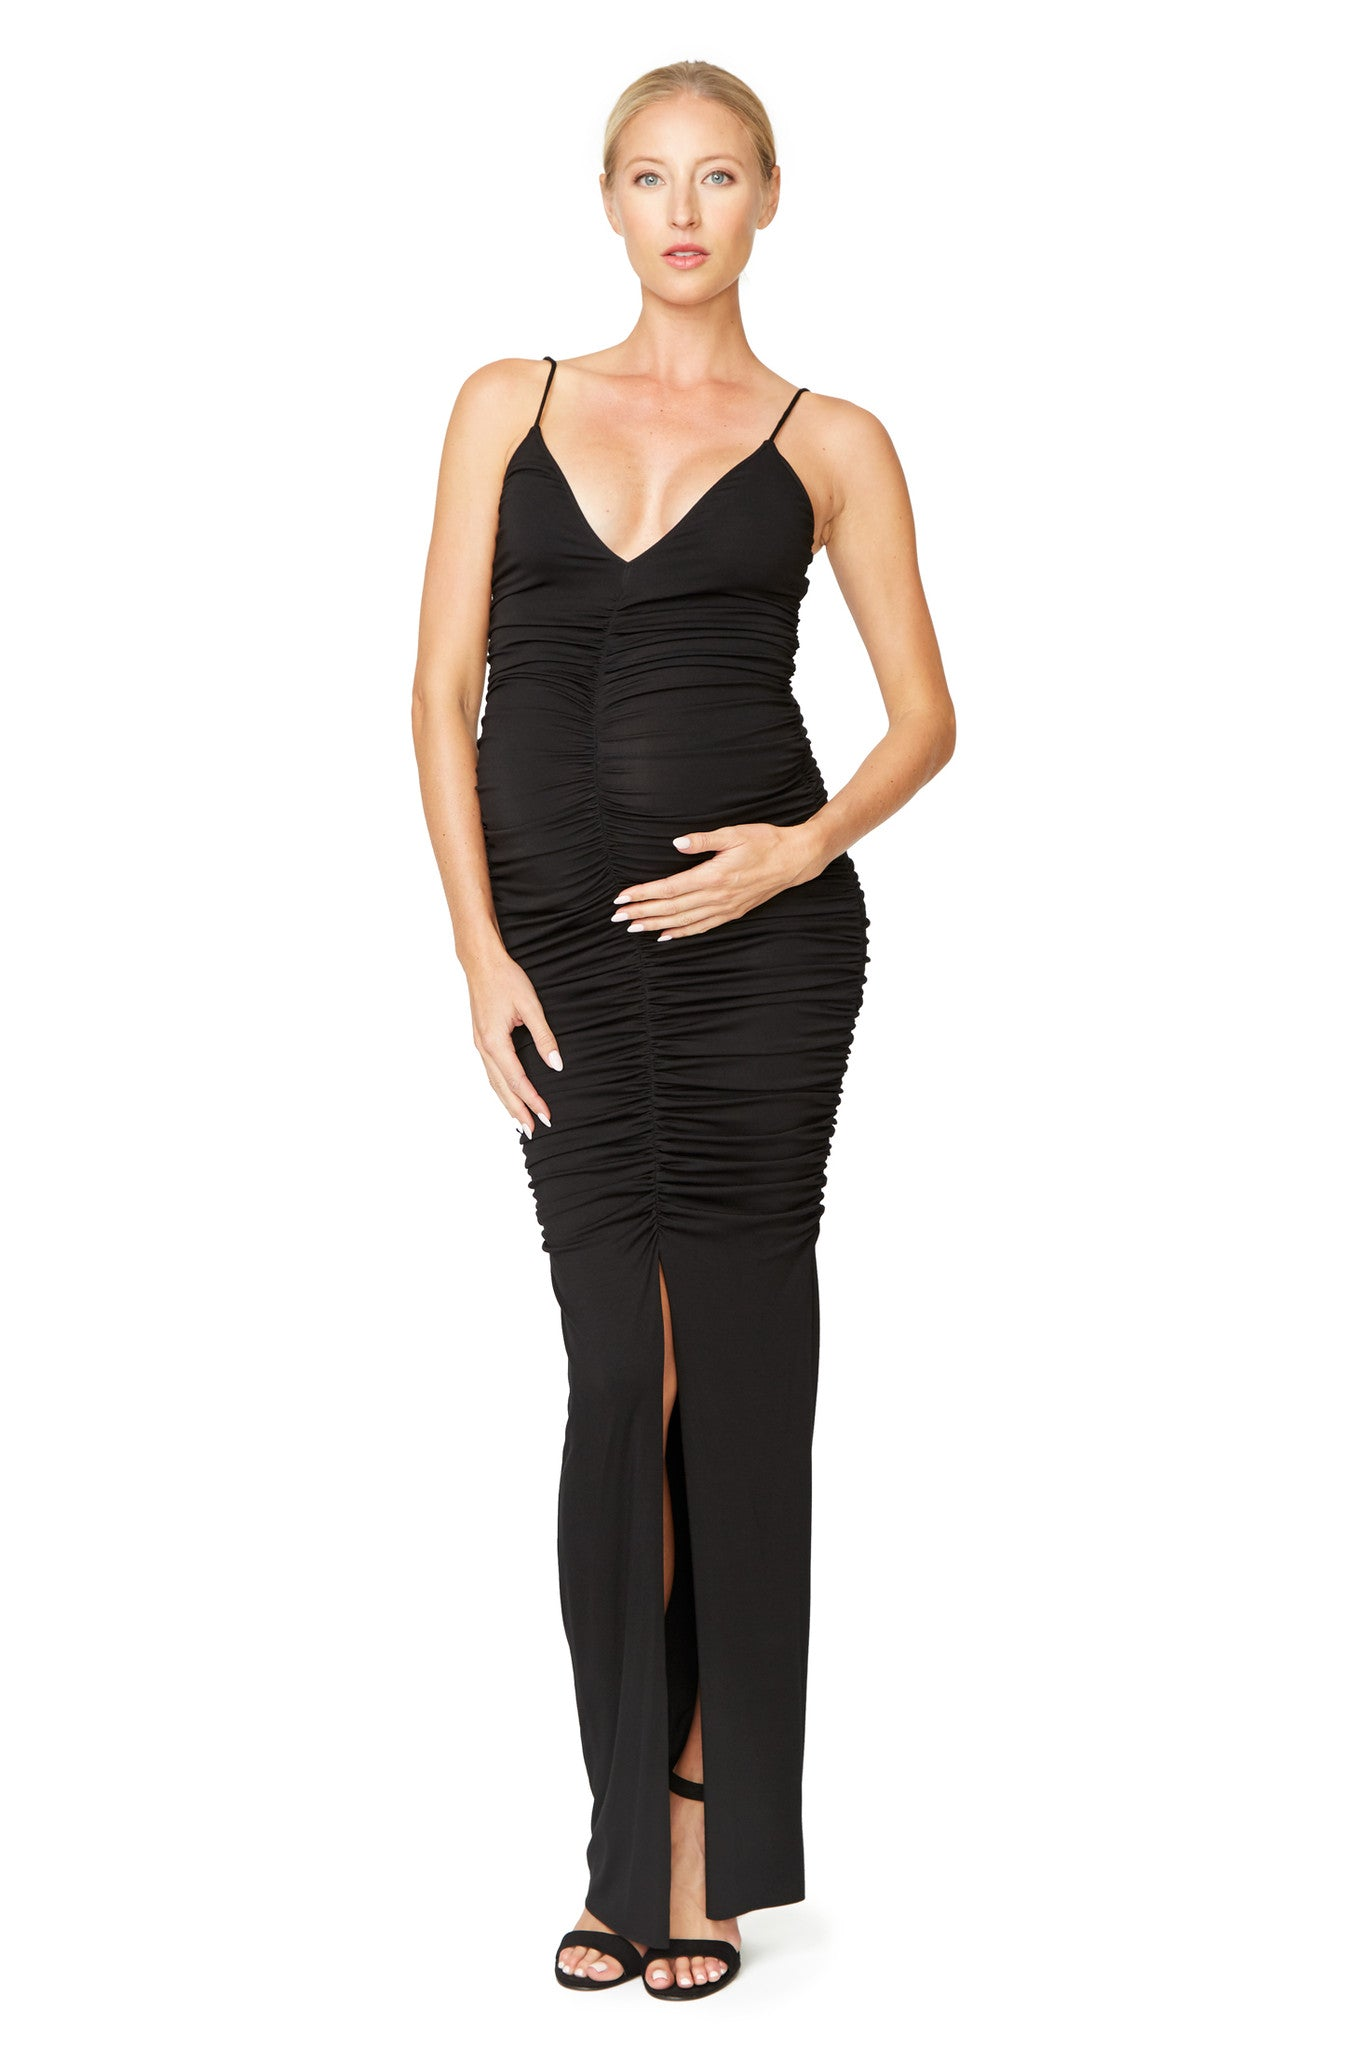 Micheli Dress - Black